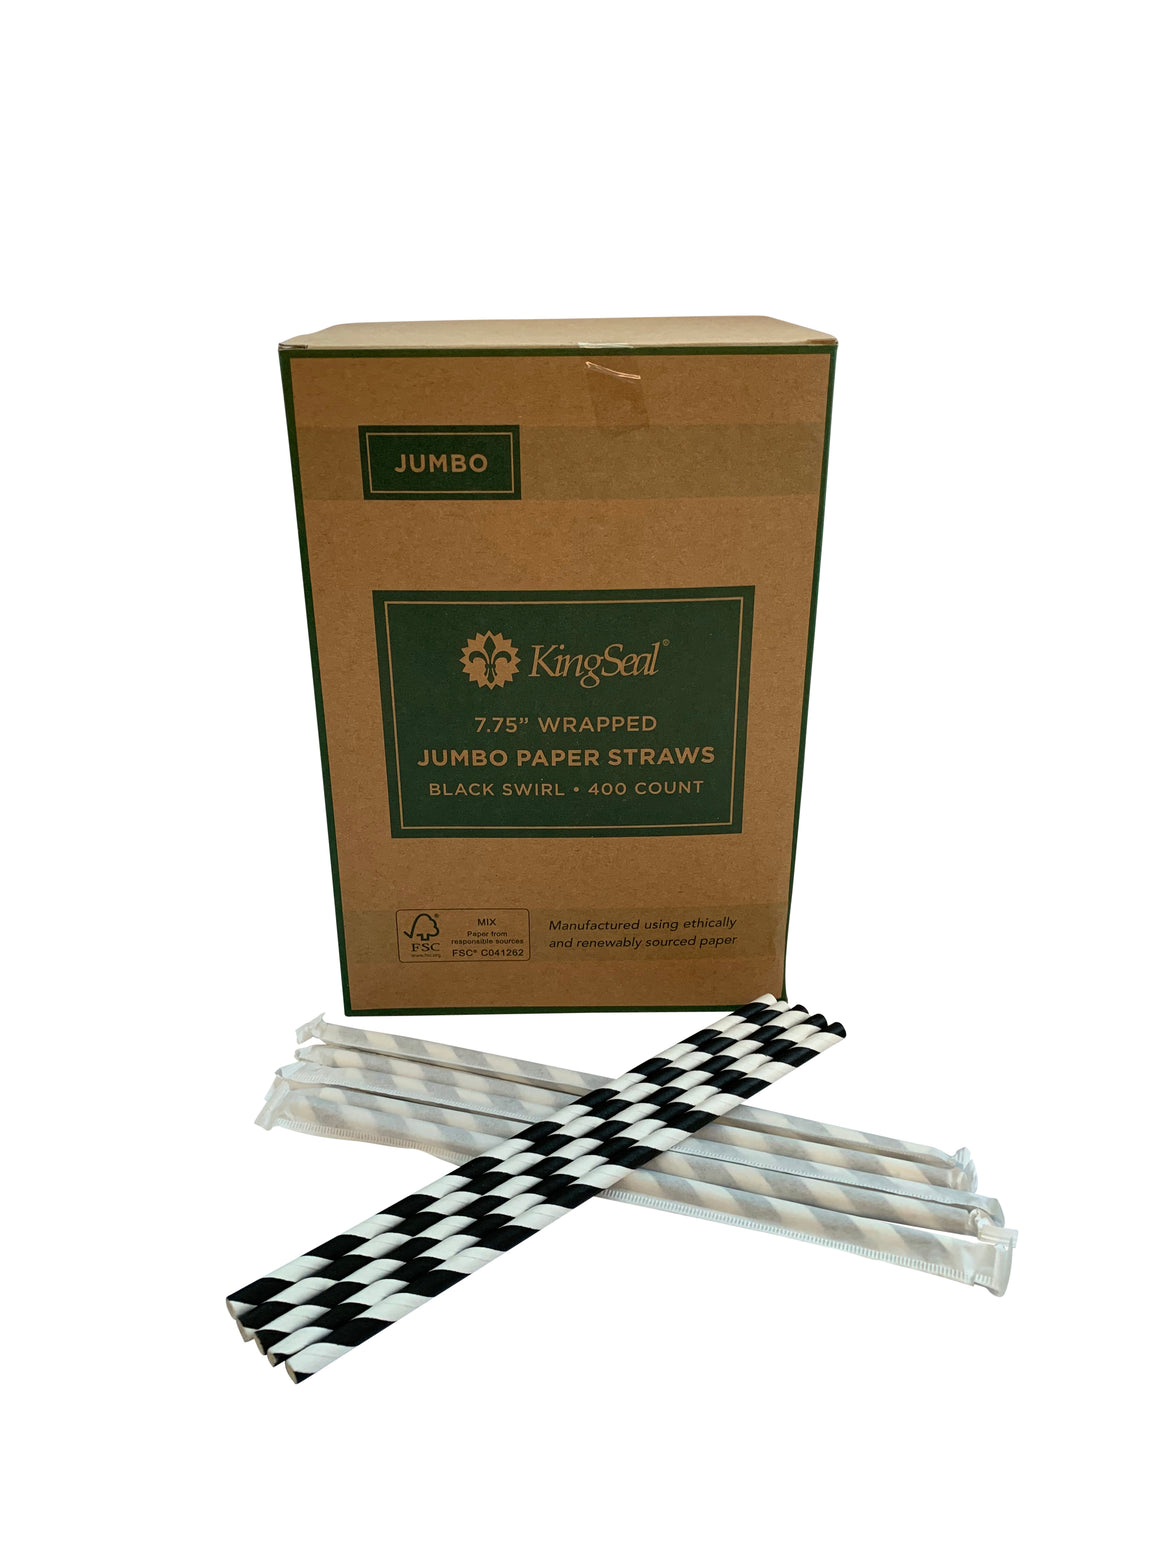 "Kingseal FSC® Paper Drinking Straws, Black Stripe, Unwrapped, 7.75 inch Length, ""Jumbo"" Size, Bulk Pack"